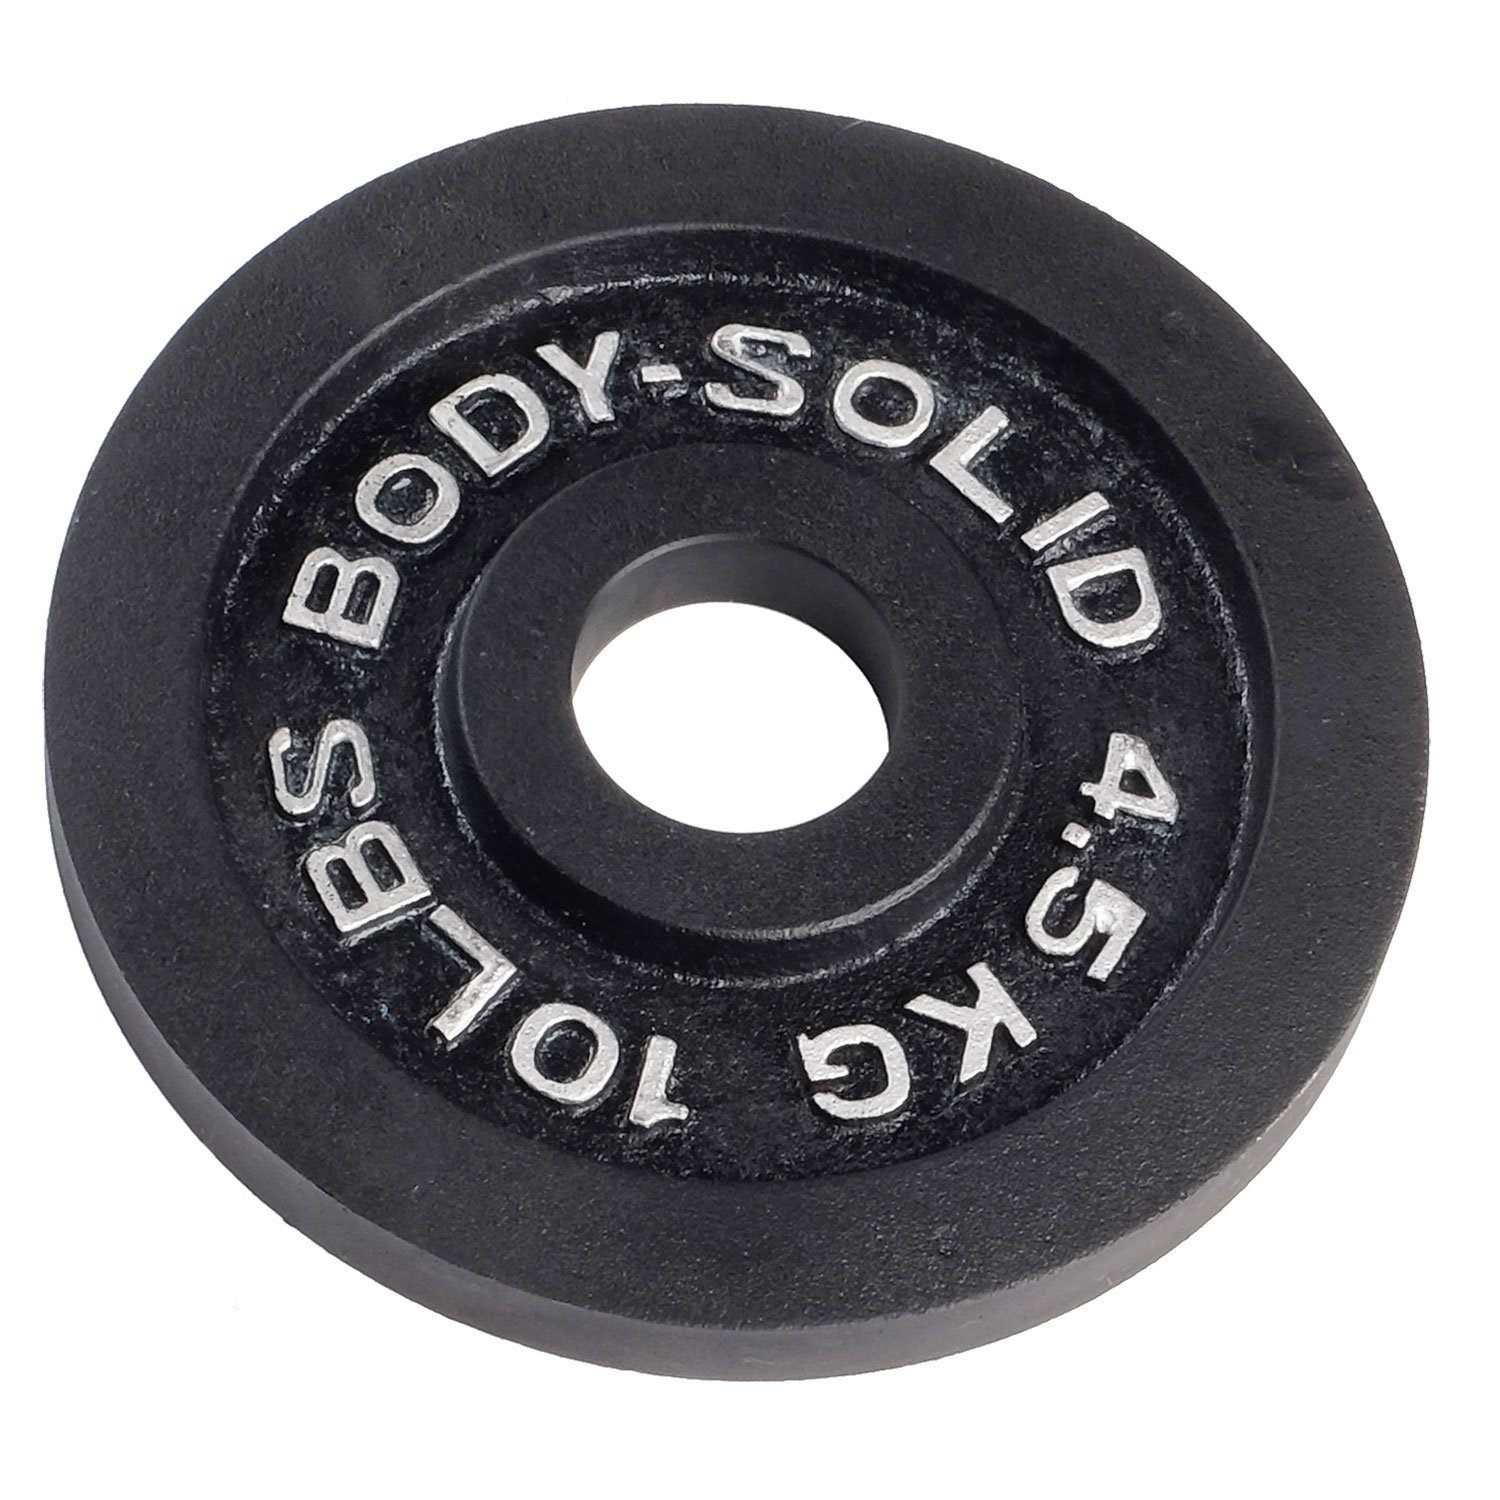 Body-Solid 10 lb. Olympic Plate